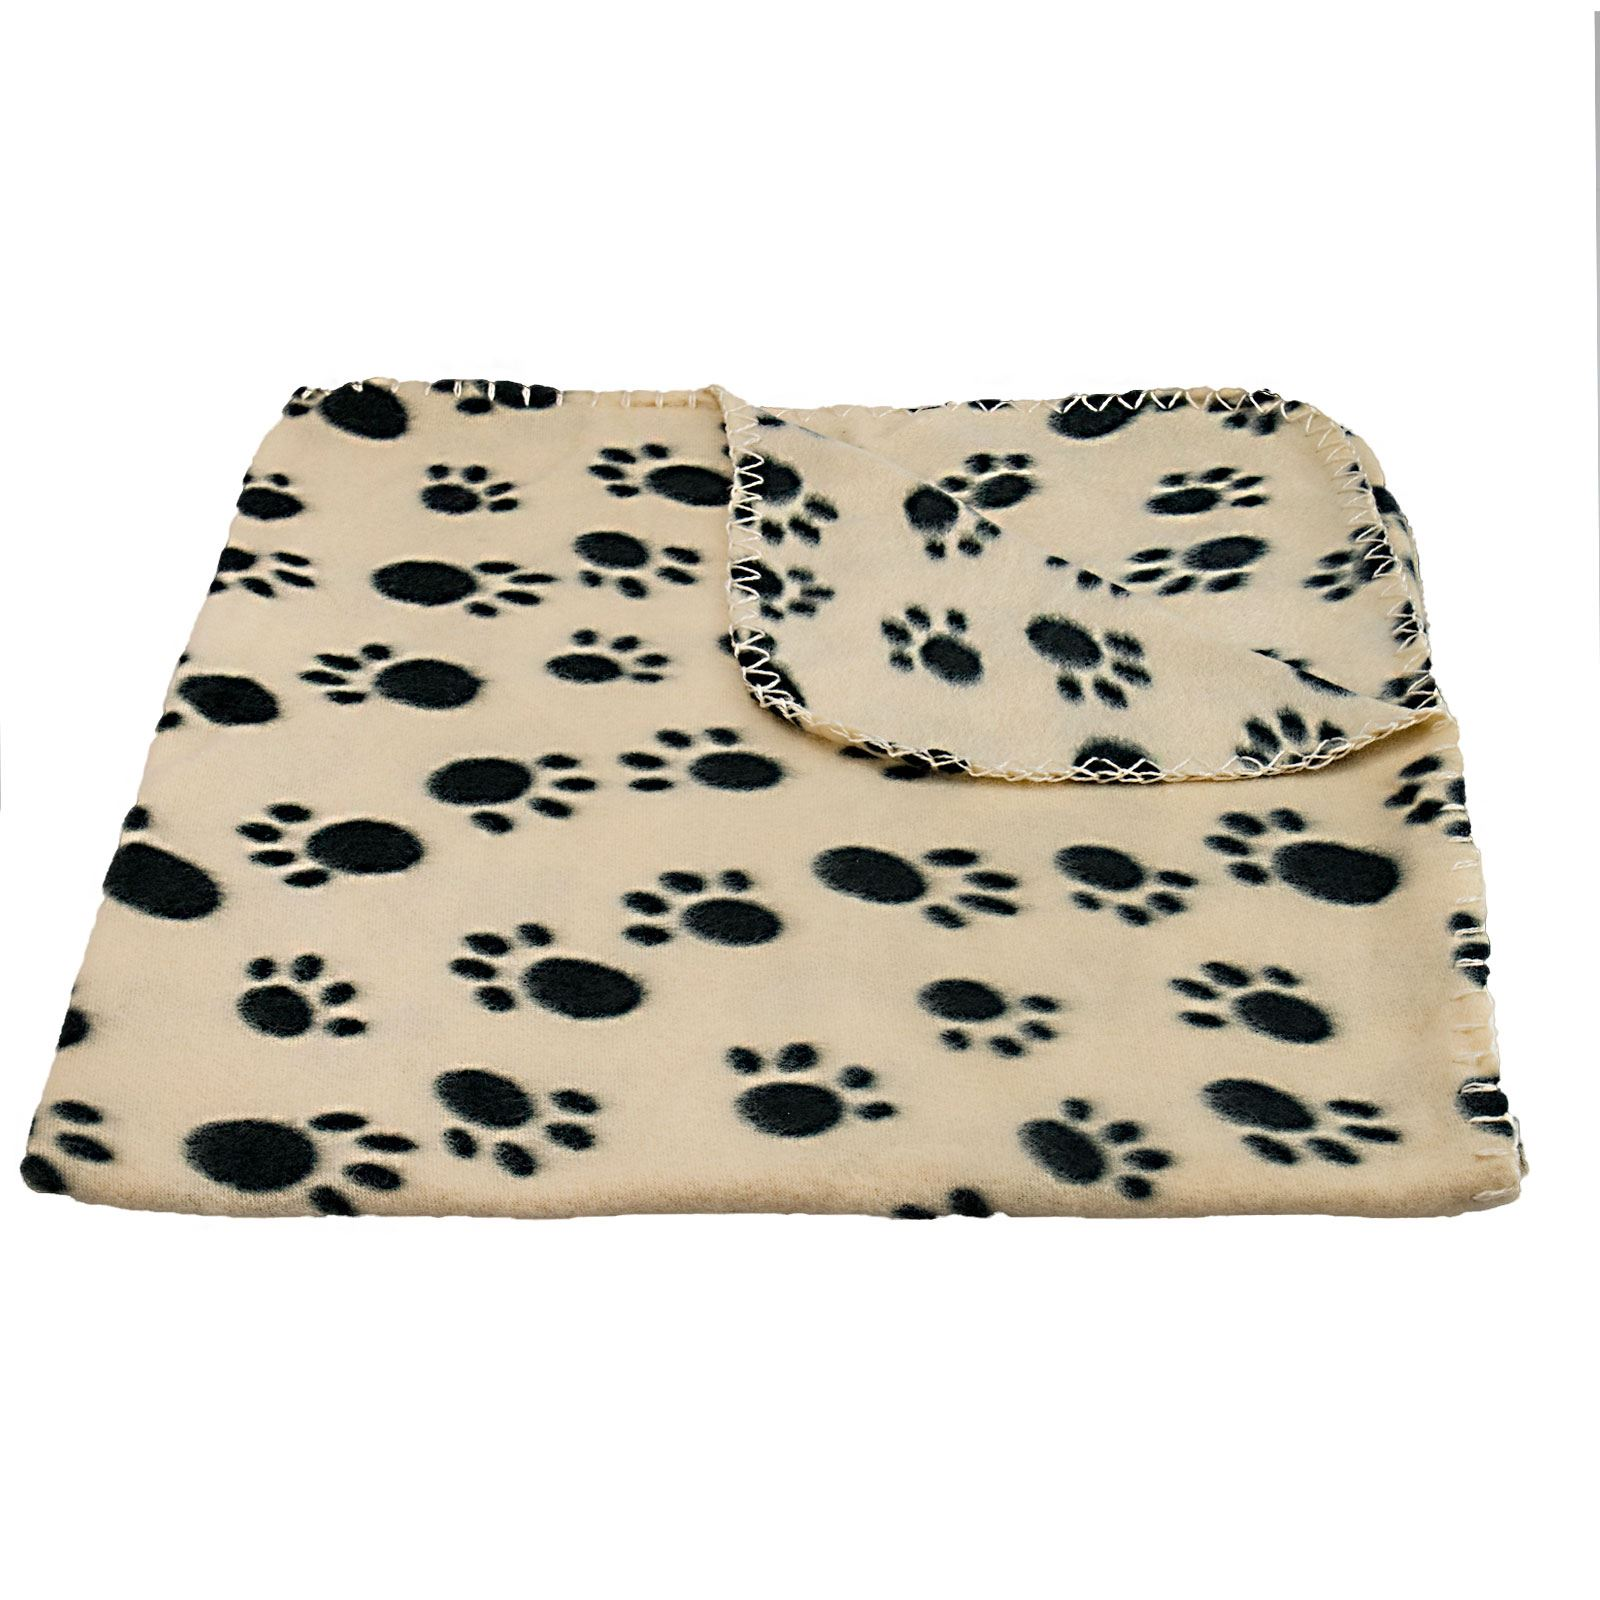 Pet-Blanket-Dogs-amp-Puppy-Cat-Paw-Print-Soft-Warm-Fleece-Bed-Travel-Basket-Car thumbnail 5